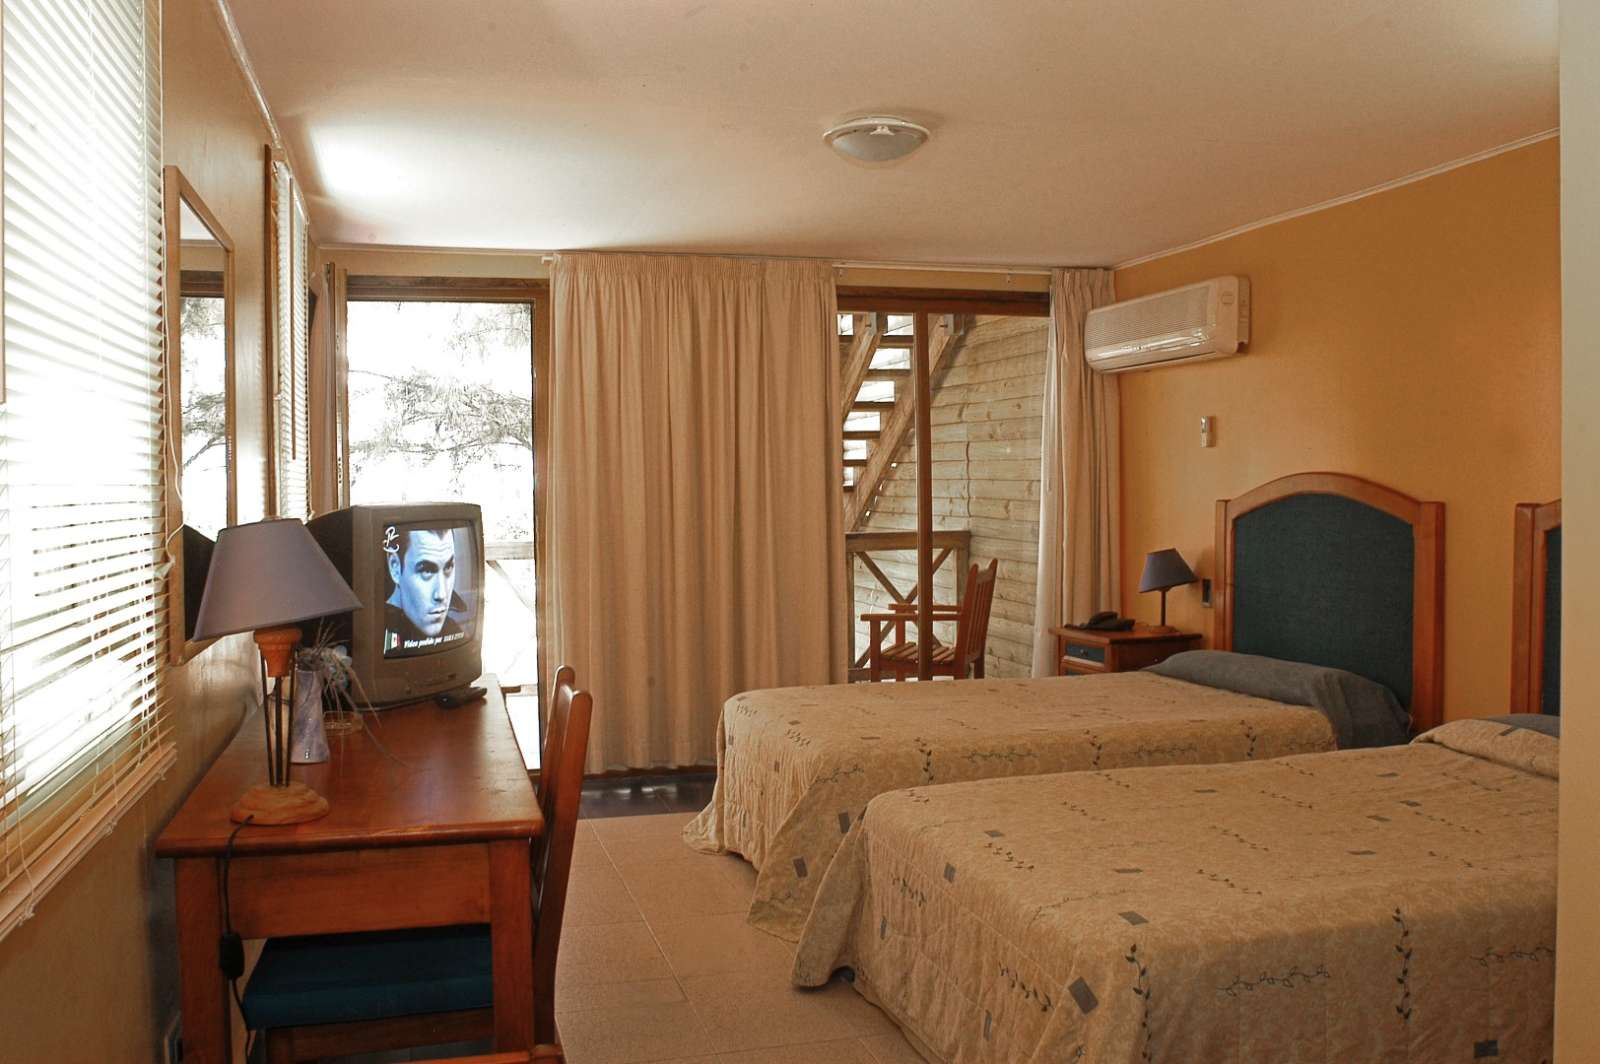 Twin bedded room at Hotel Cayo Levisa in Cuba